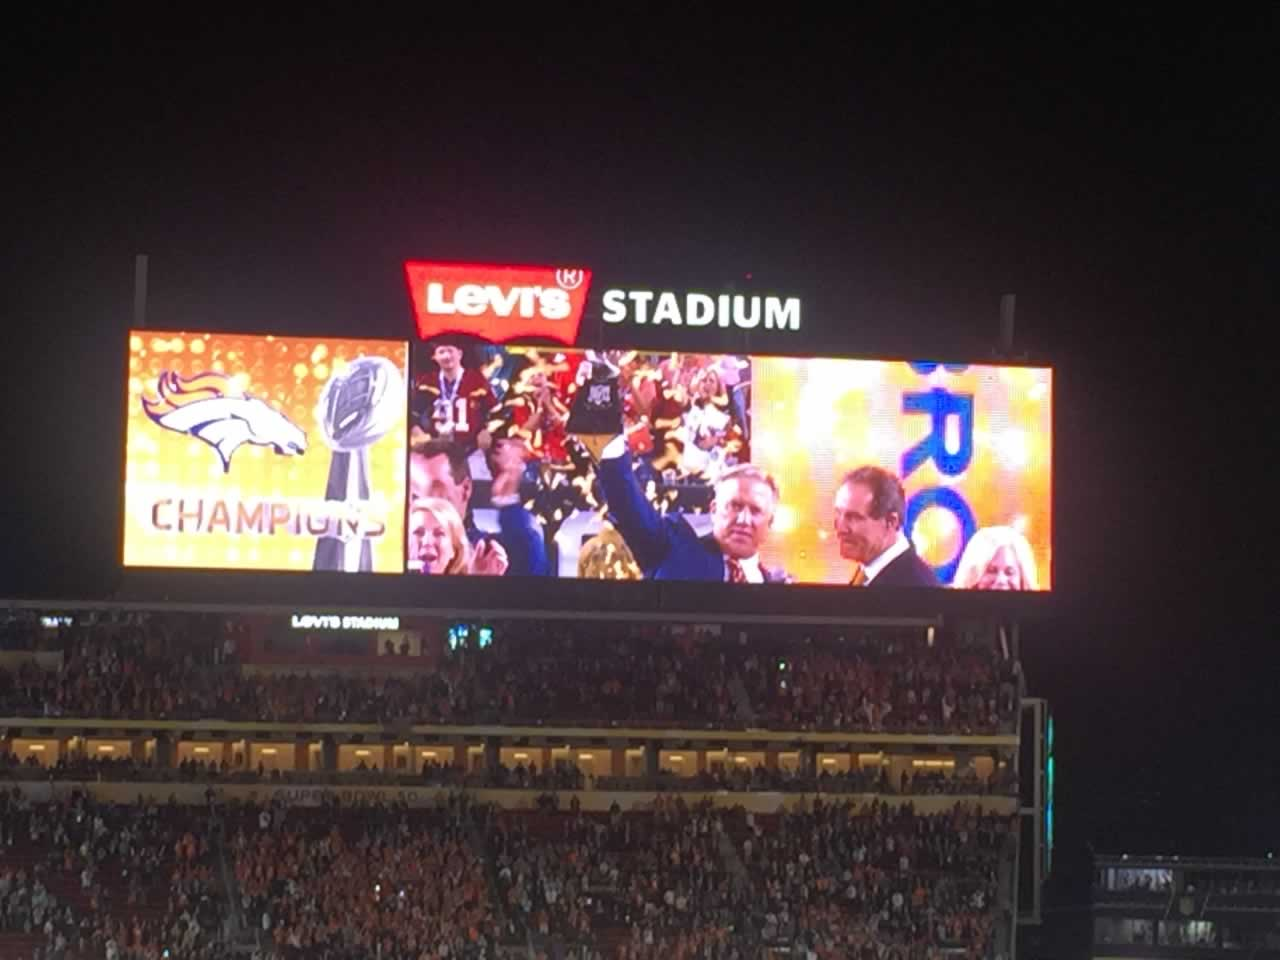 "<div class=""meta image-caption""><div class=""origin-logo origin-image none""><span>none</span></div><span class=""caption-text"">The scoreboard at Levi's Stadium in Santa Clara, Calif. shows at Broncos victory on Sunday, February 7, 2016. (KGO-TV)</span></div>"